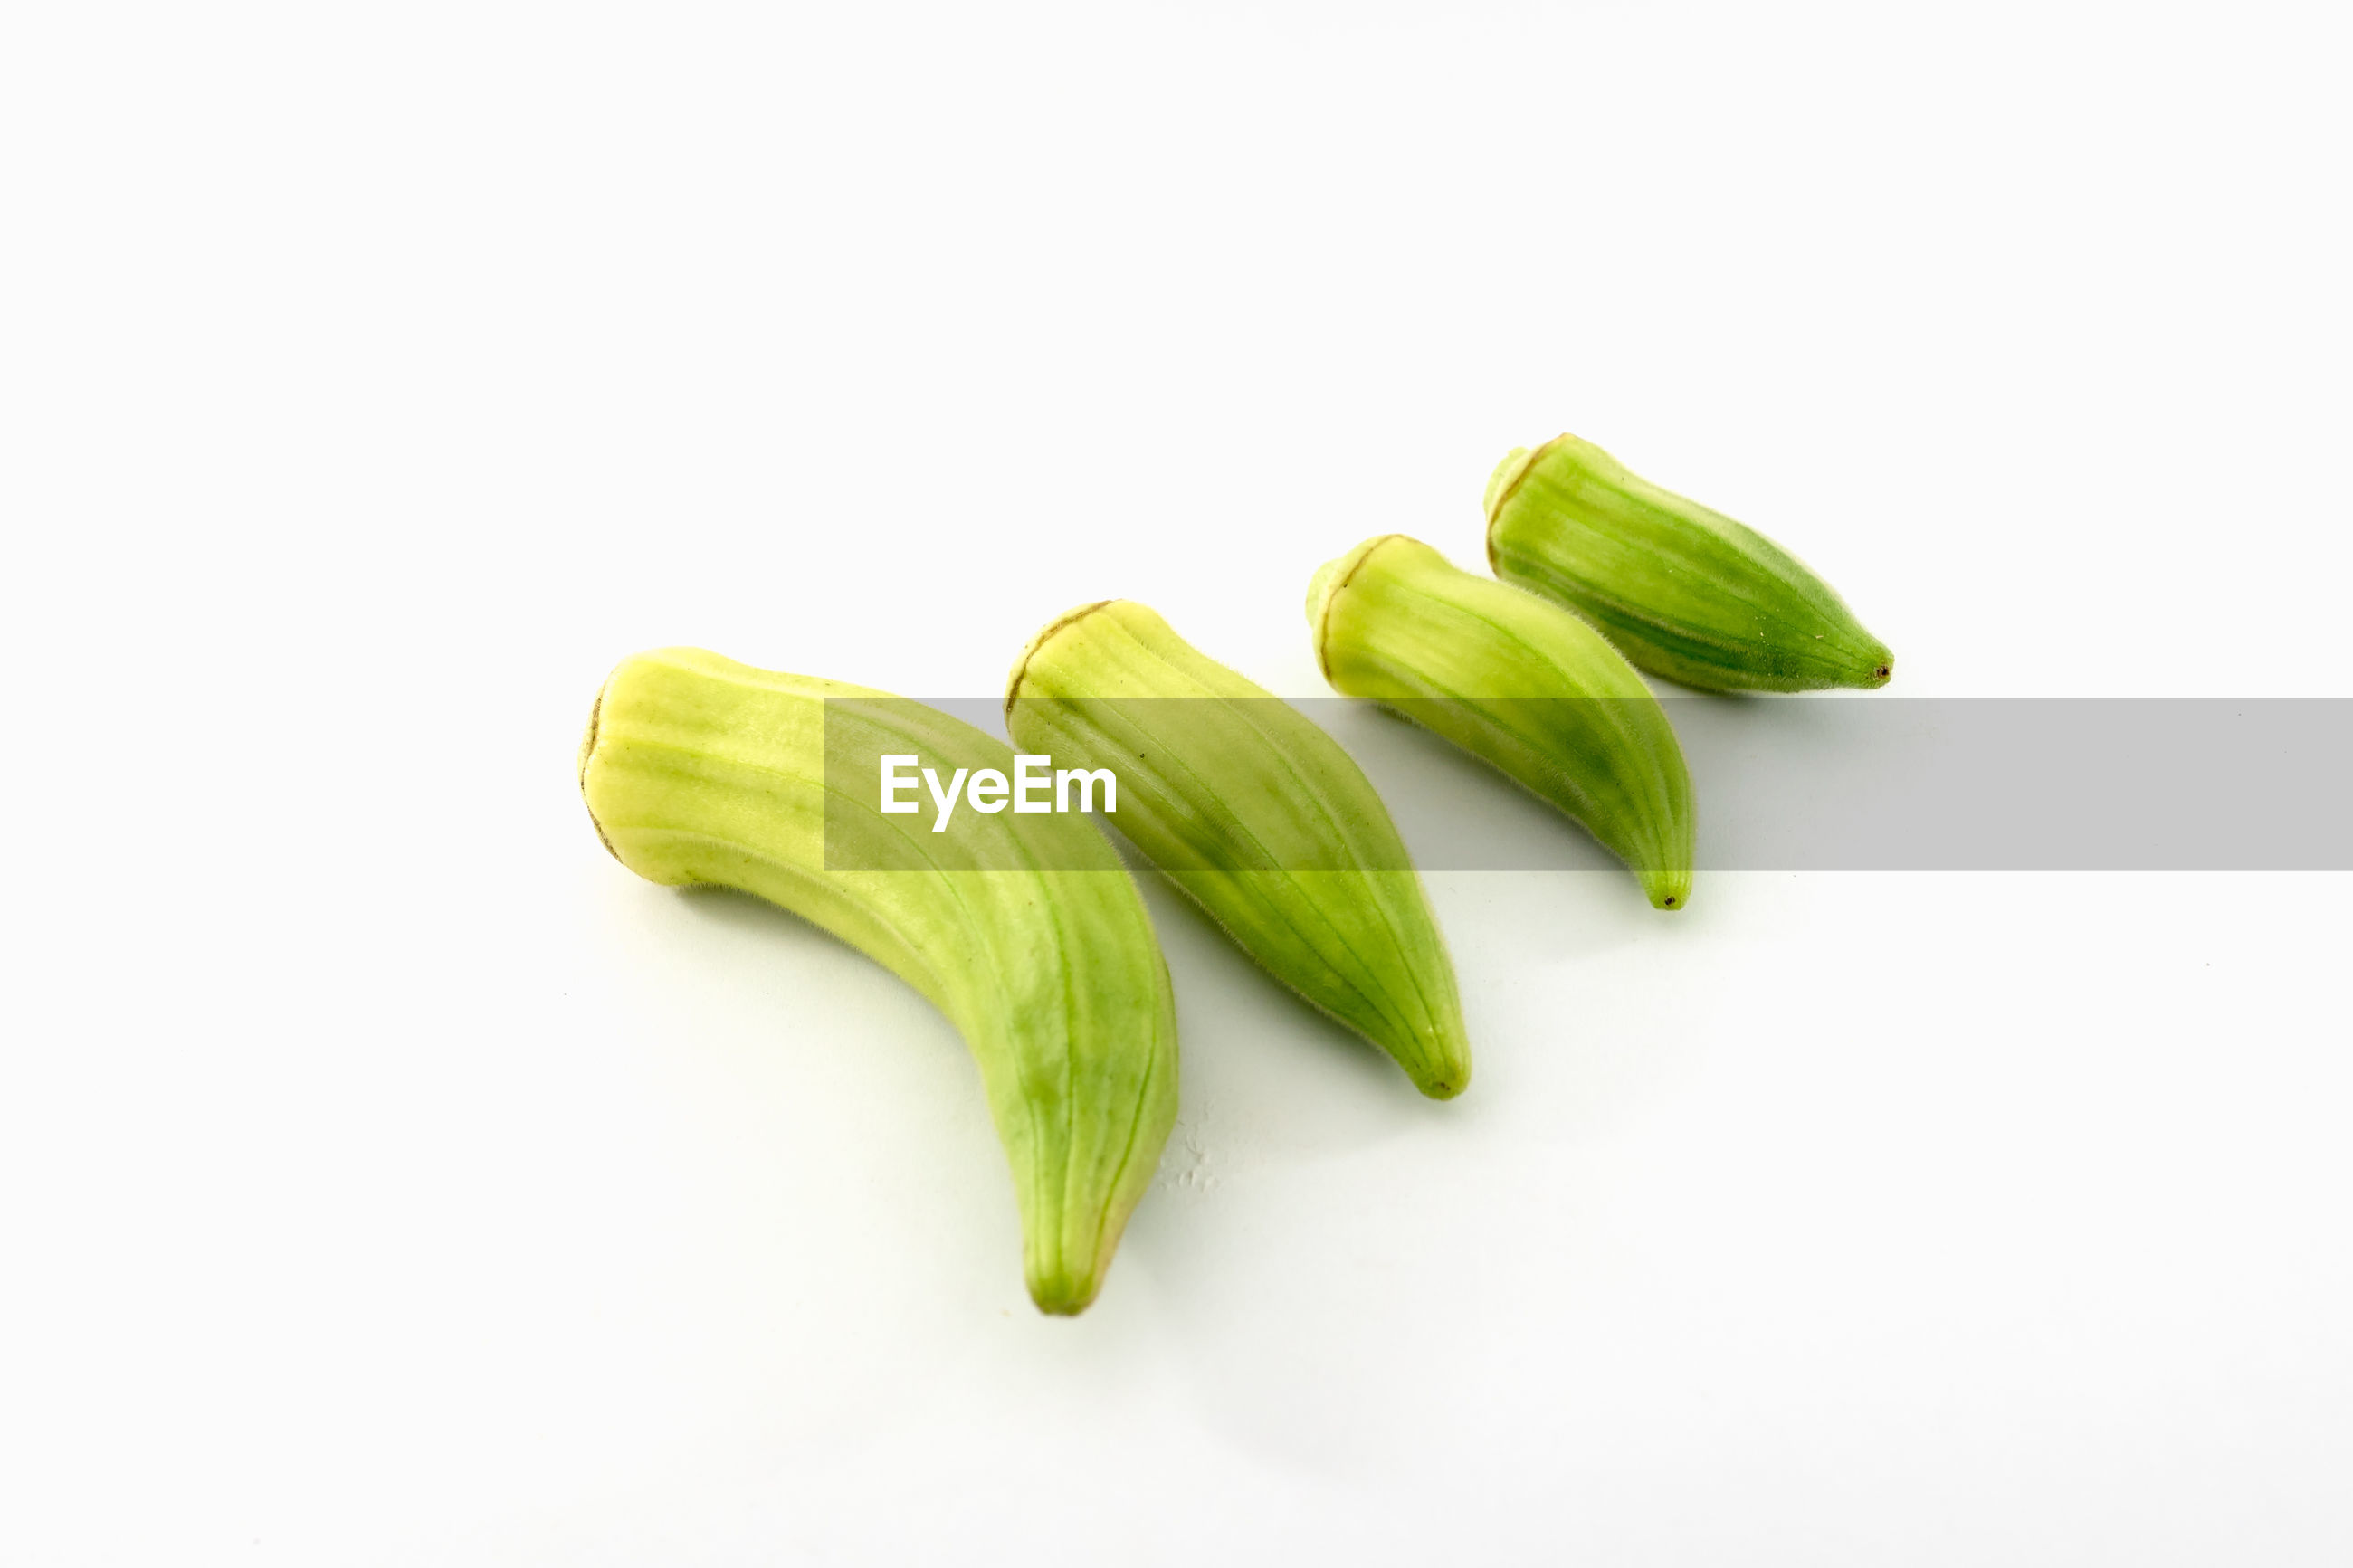 HIGH ANGLE VIEW OF GREEN CHILI PEPPER ON WHITE BACKGROUND